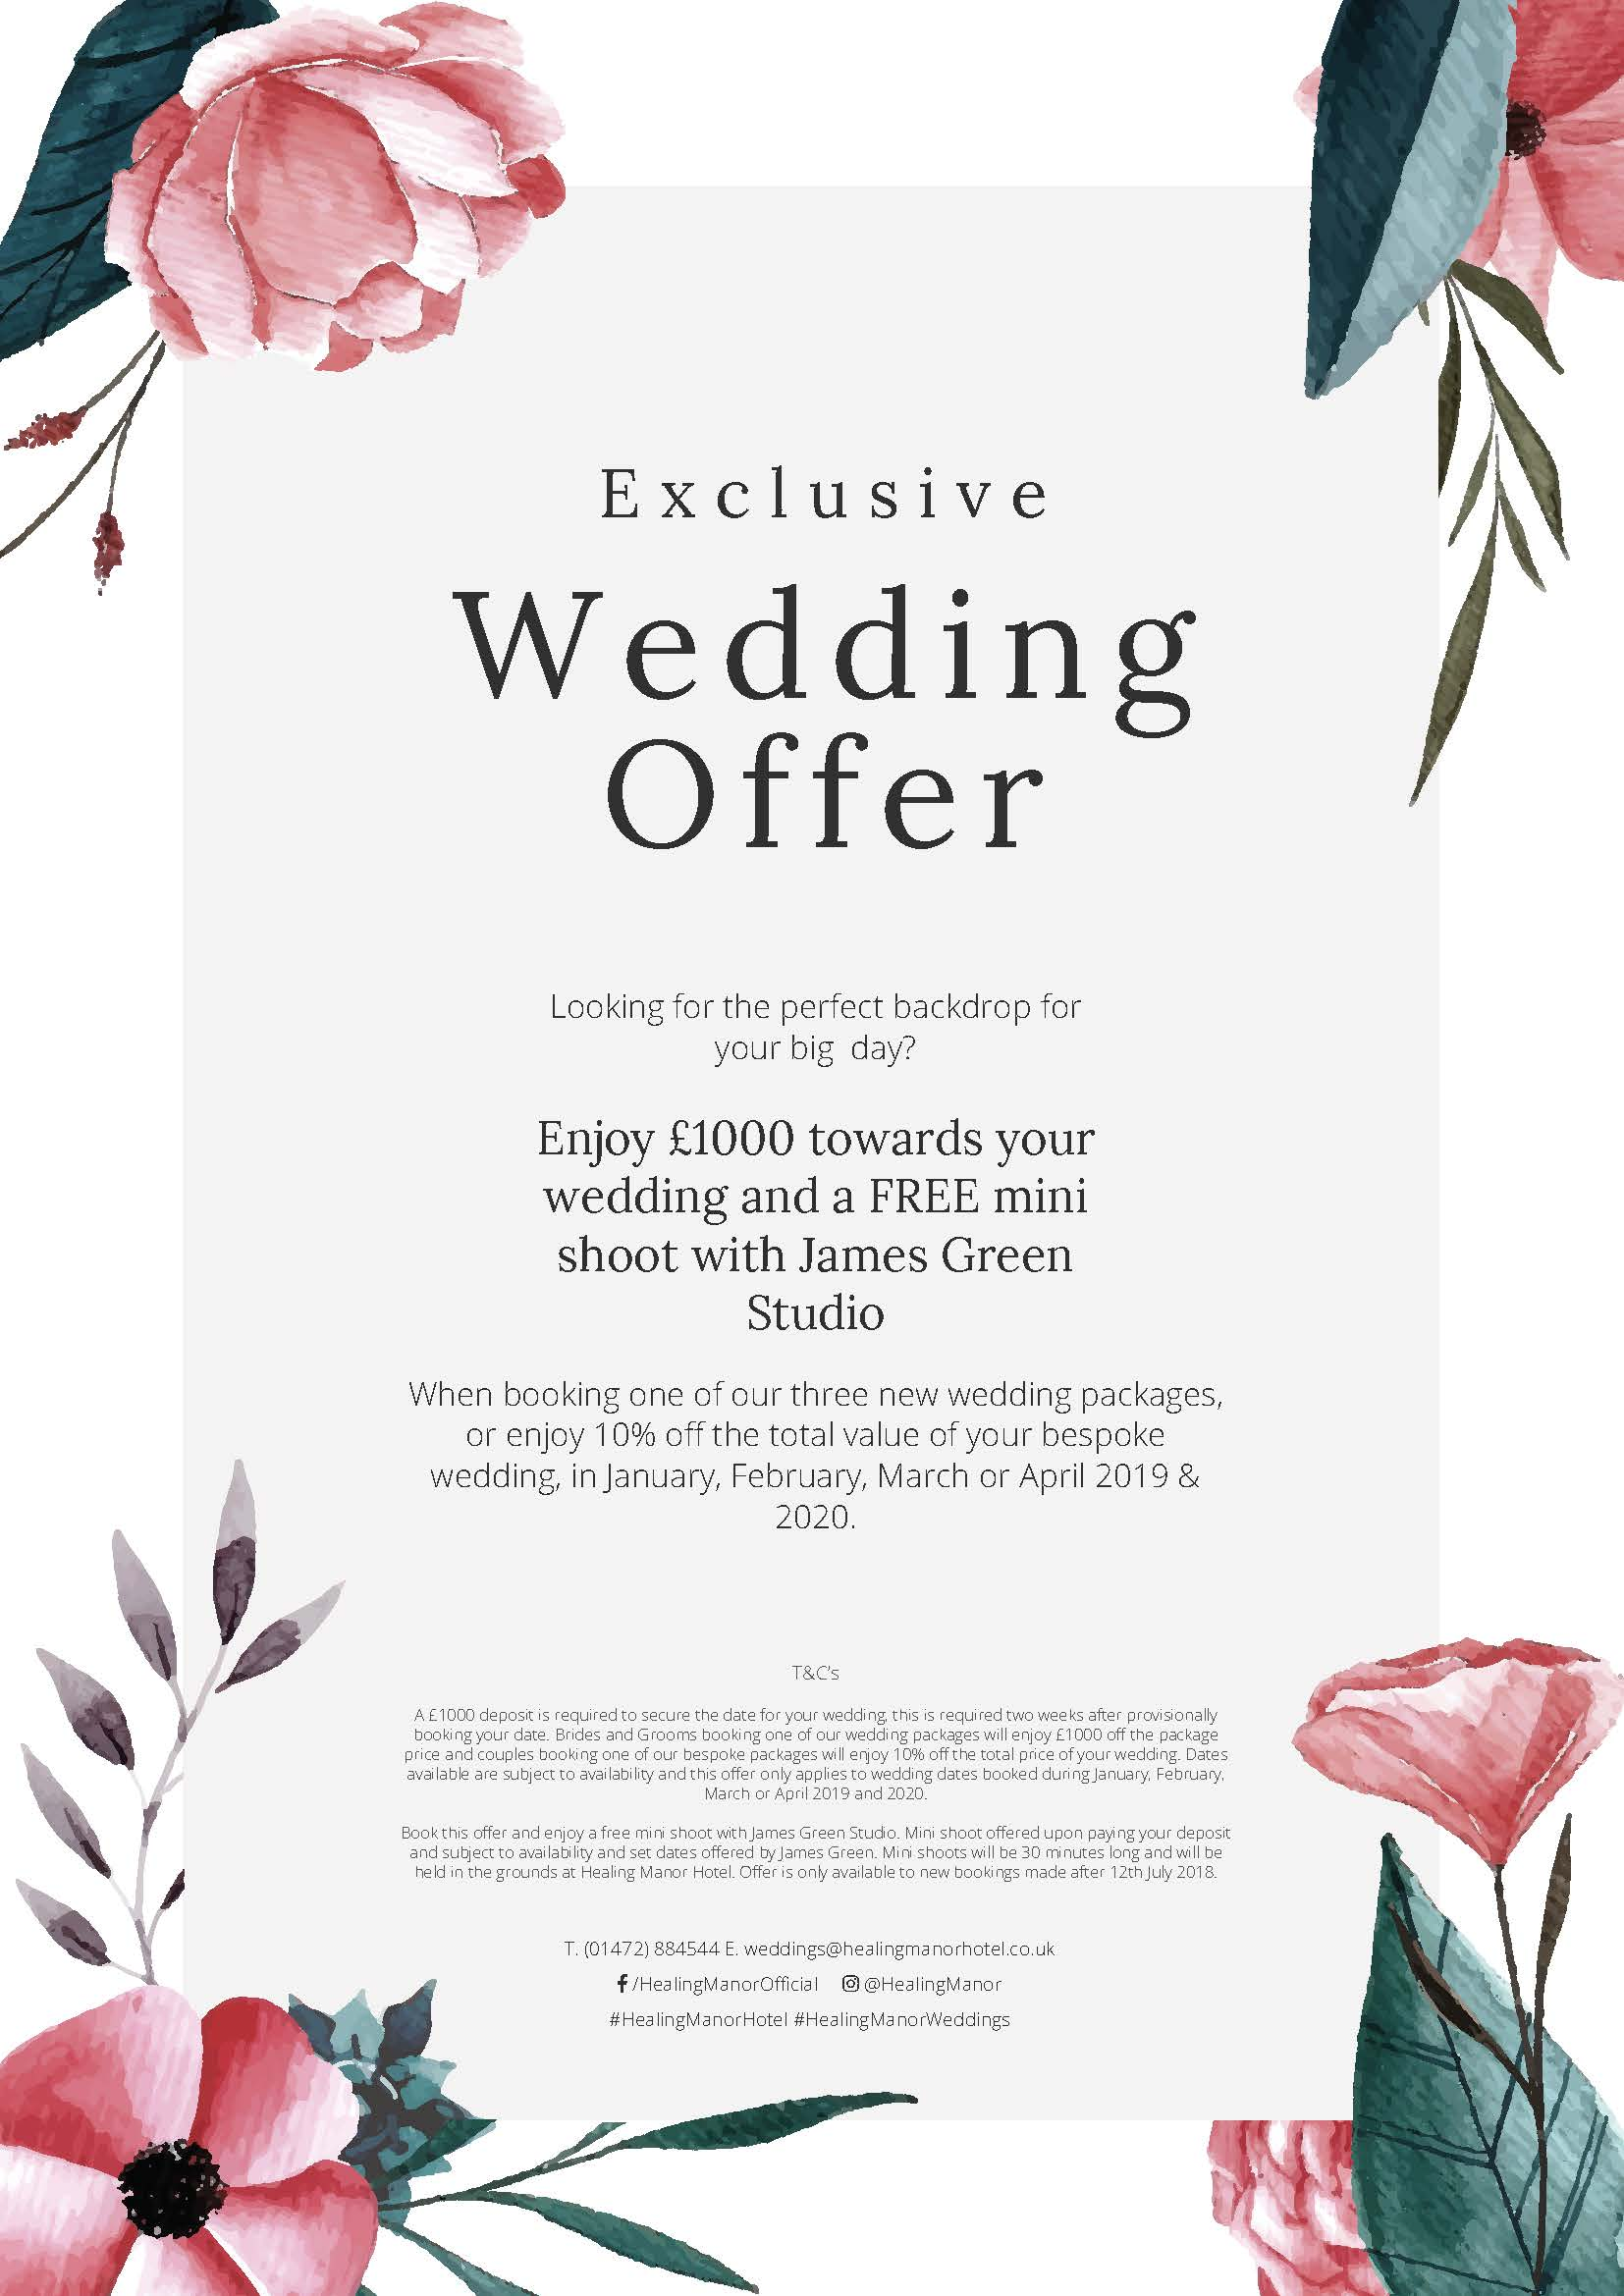 Healing Manor Hotel Winter and Spring Wedding Offer with